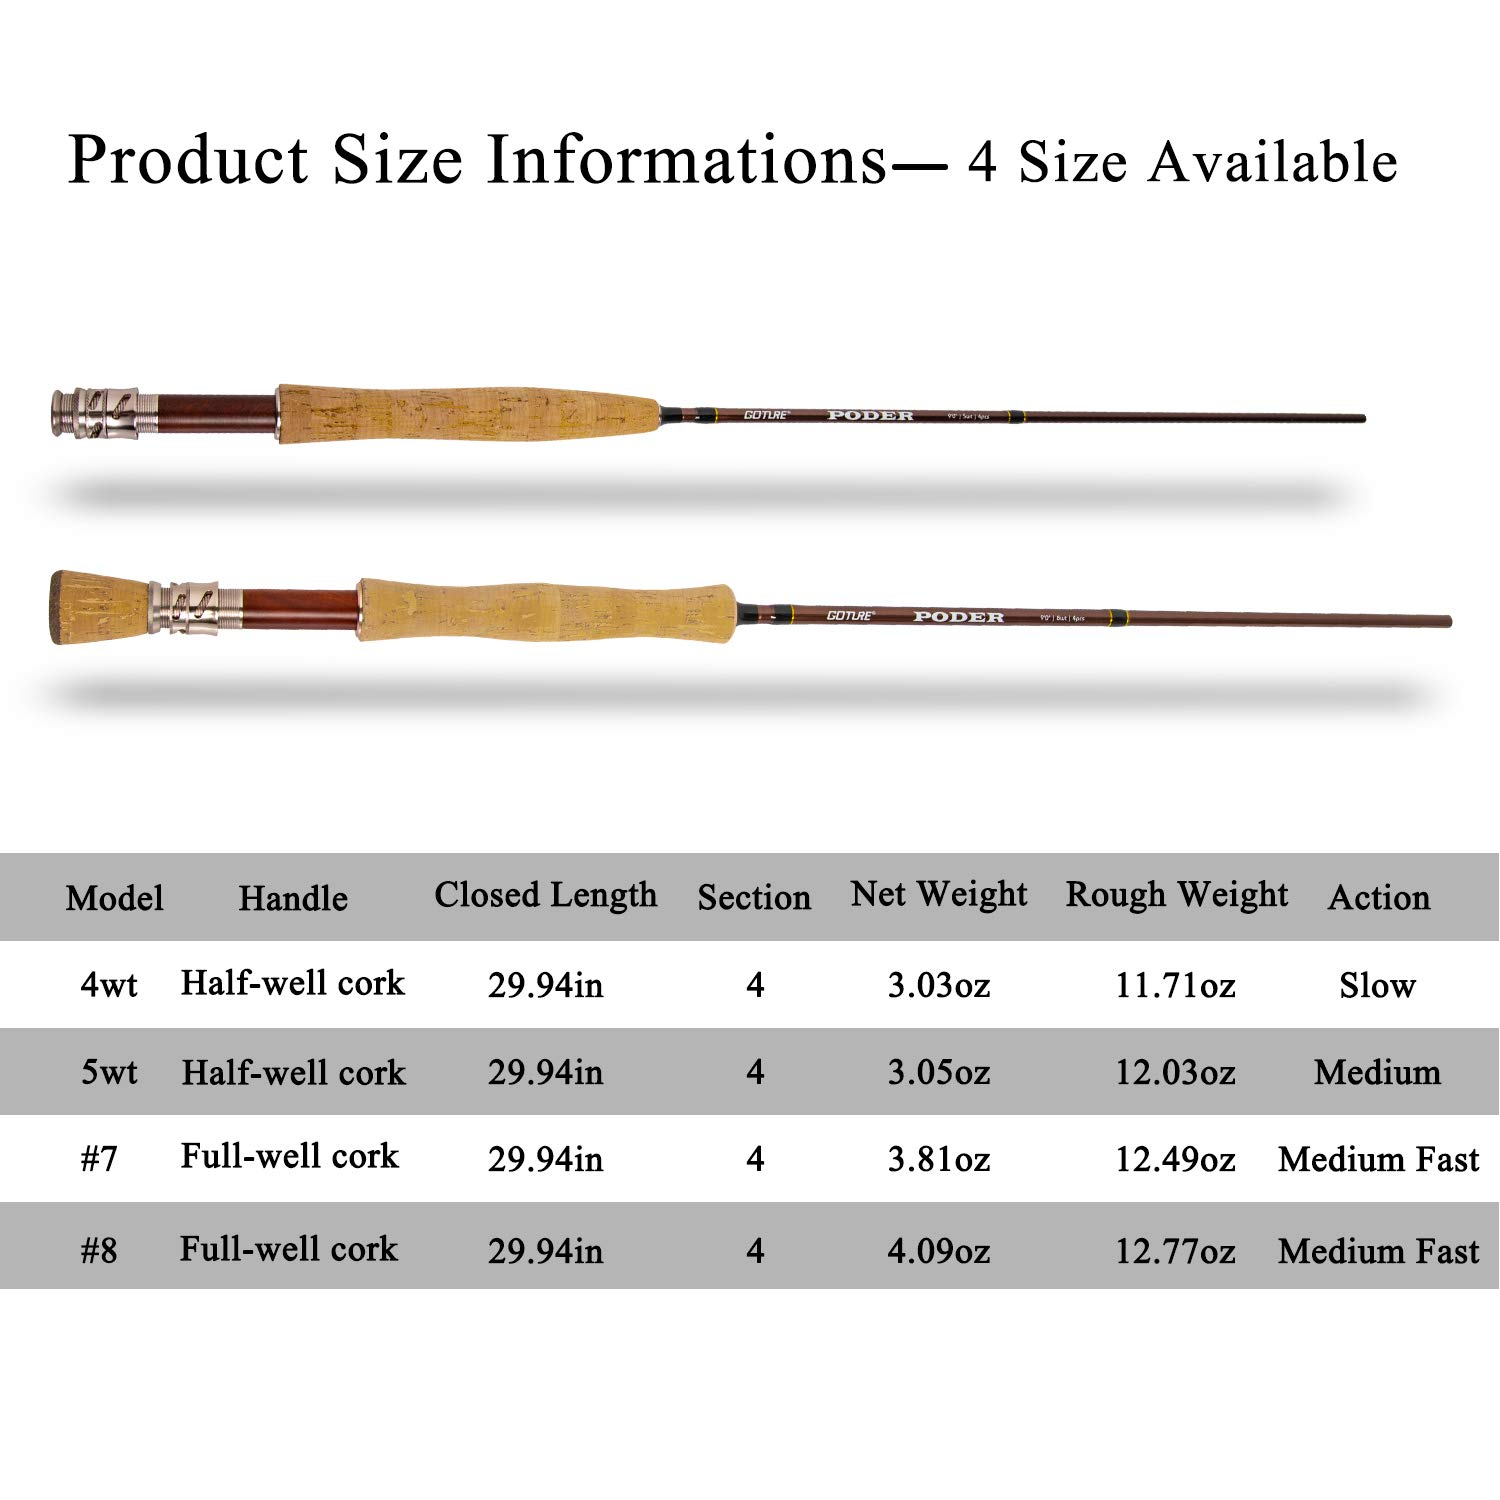 Goture Fly Fishing Rod Portable Fly Rod with 30-ton Carbon Fiber Blanks AA Cork Grip Hard Chromed Guides and Travel Rod Tube, 4-Piece 9 Feet Slow/Medium/Medium Fast Action Fishing Rods (4wt)